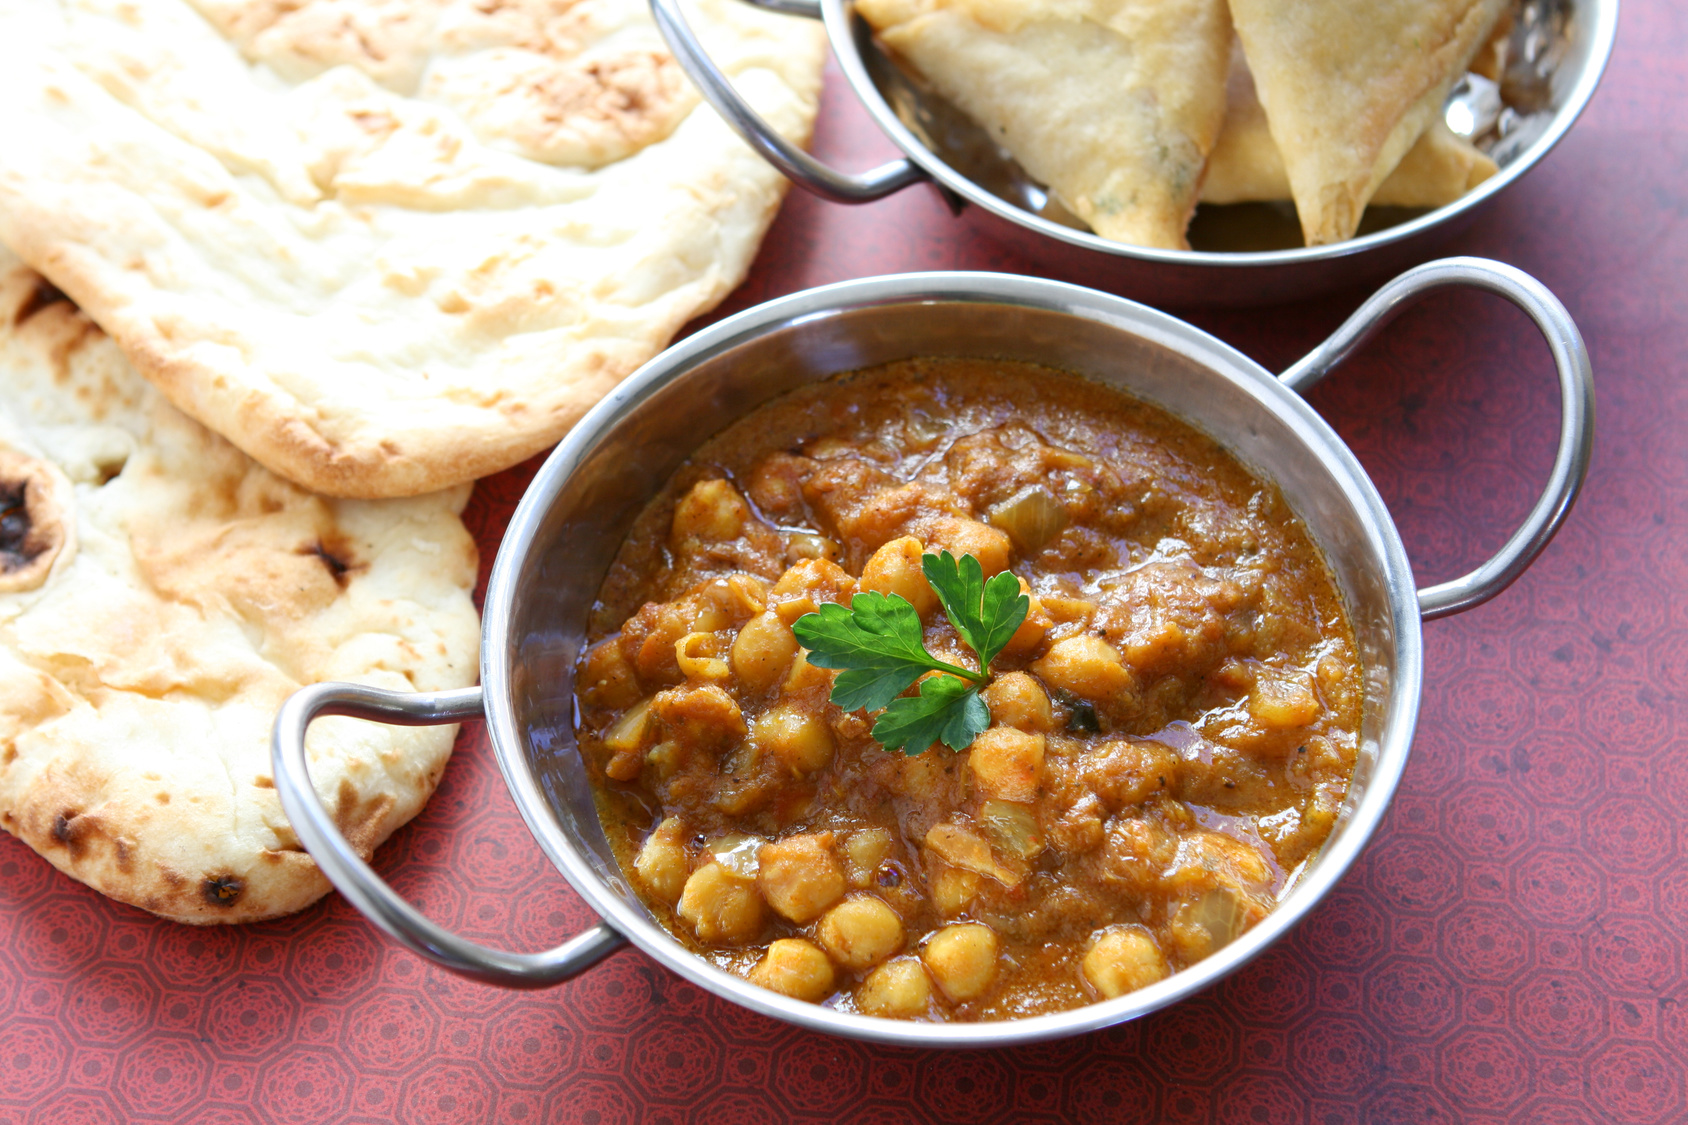 Orchid authentic indian cuisine cooking class august 25 for Authentic indian cuisine